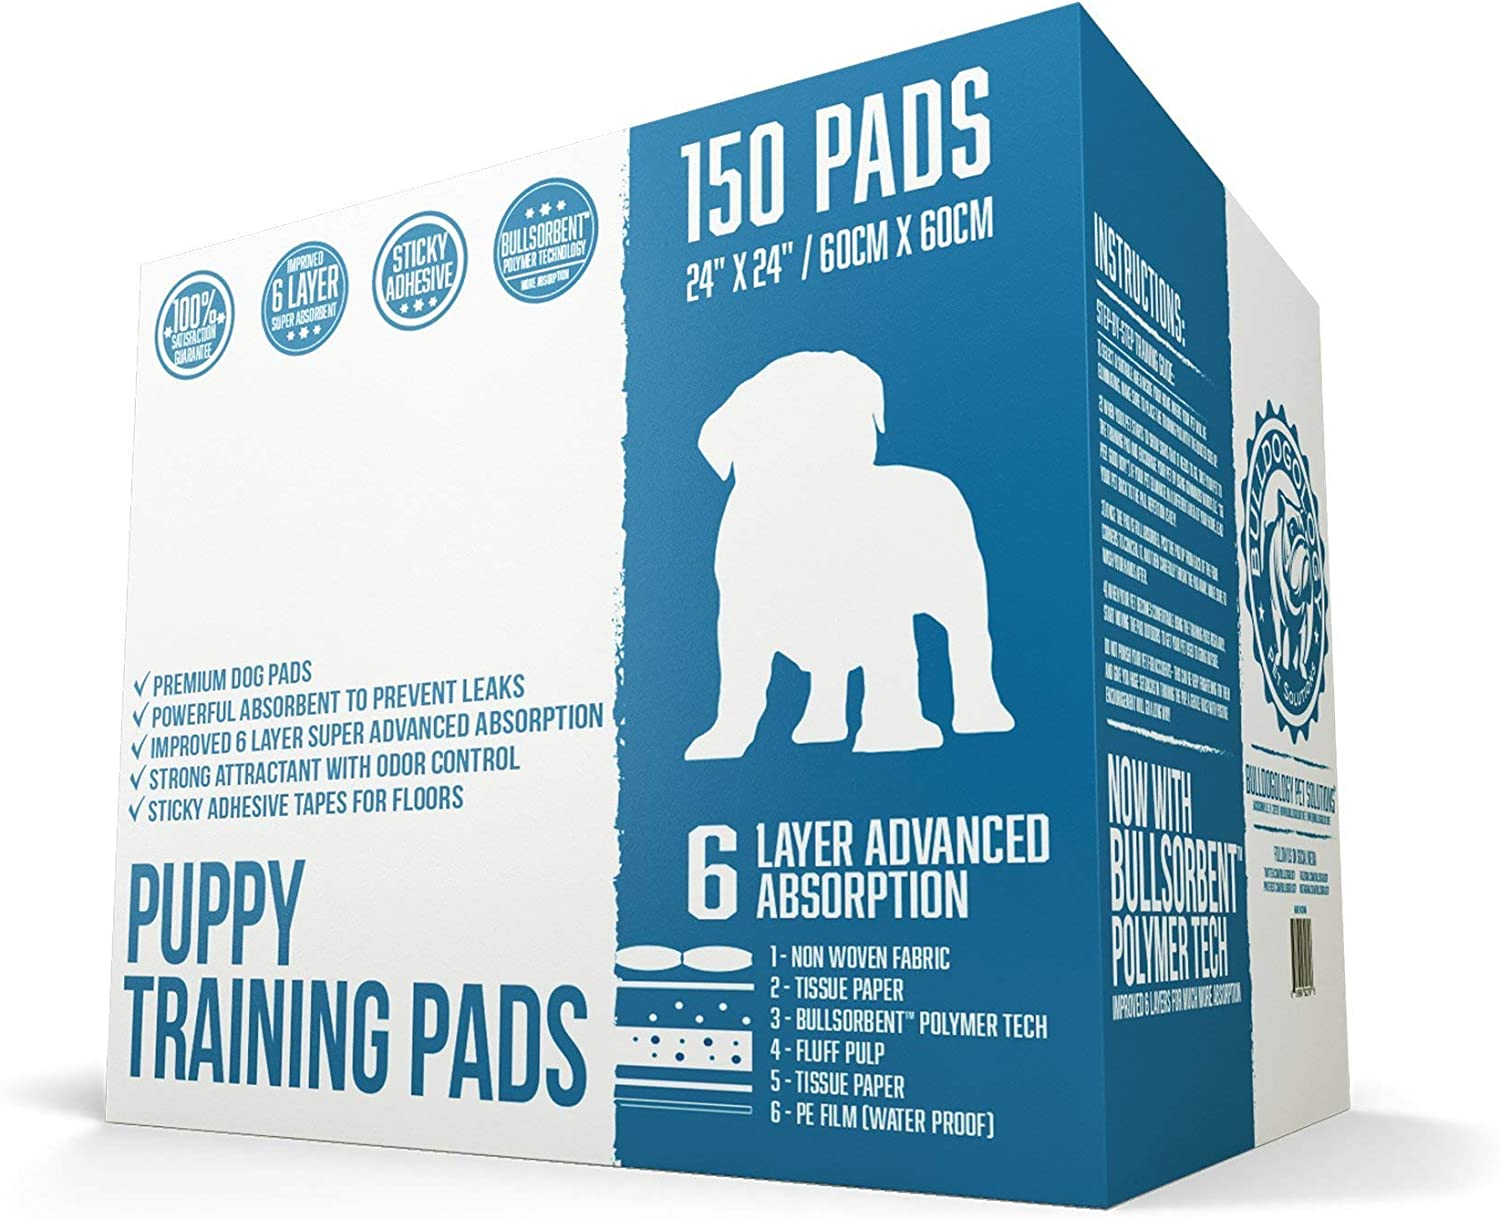 Bulldogology Puppy Pee Pads with Adhesive Sticky Tape  Large Dog Training Premium Wee Pads (24x24) 6 Layers with Extra Quick Dry Bullsorbent Polymer Tech (150Count)